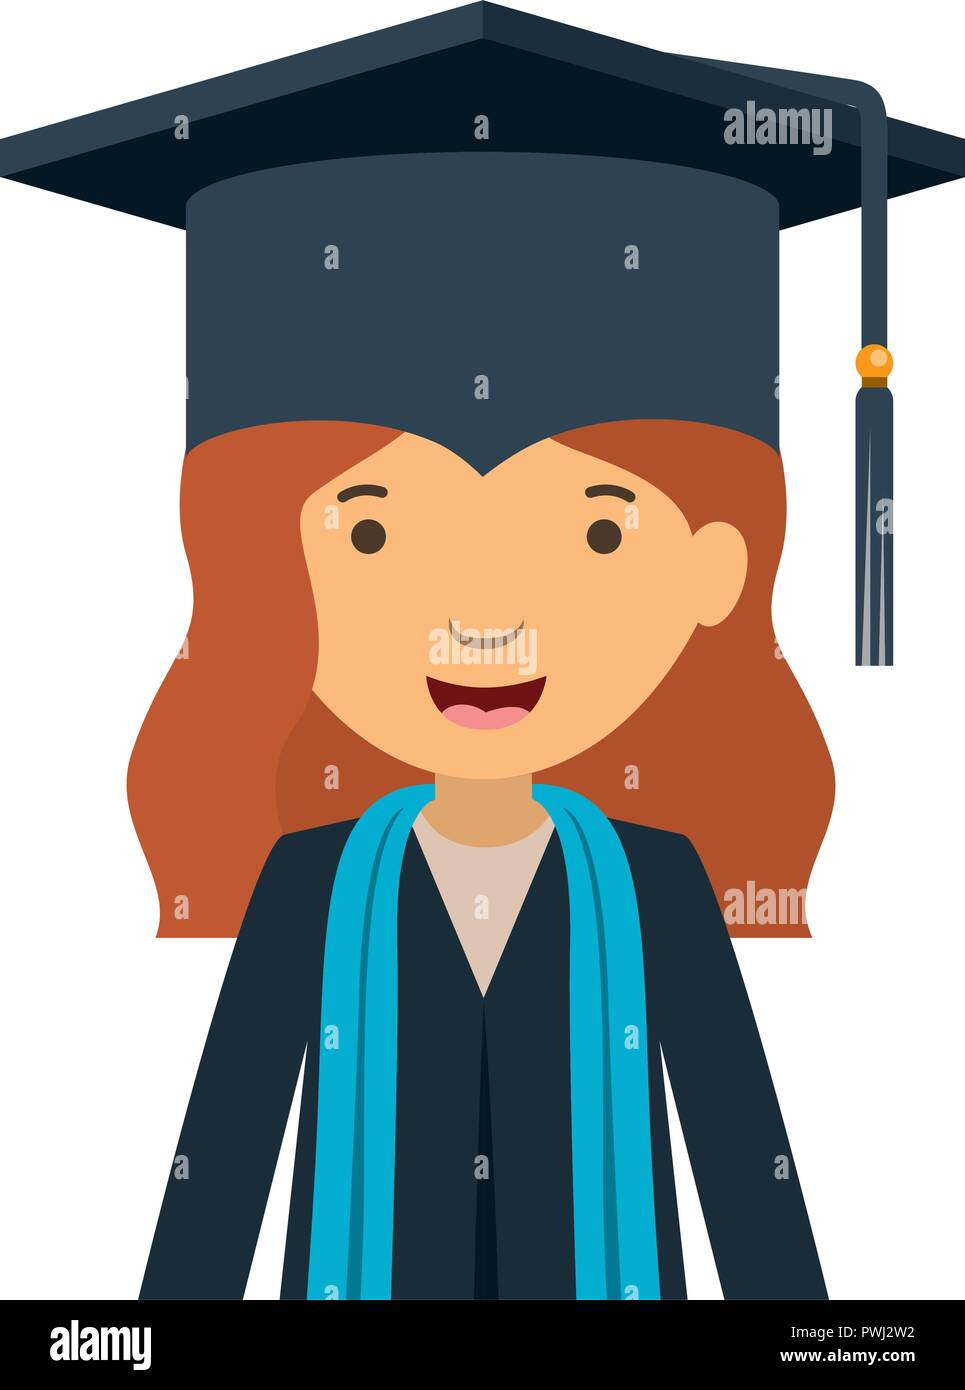 young woman graduating avatar character - Stock Image